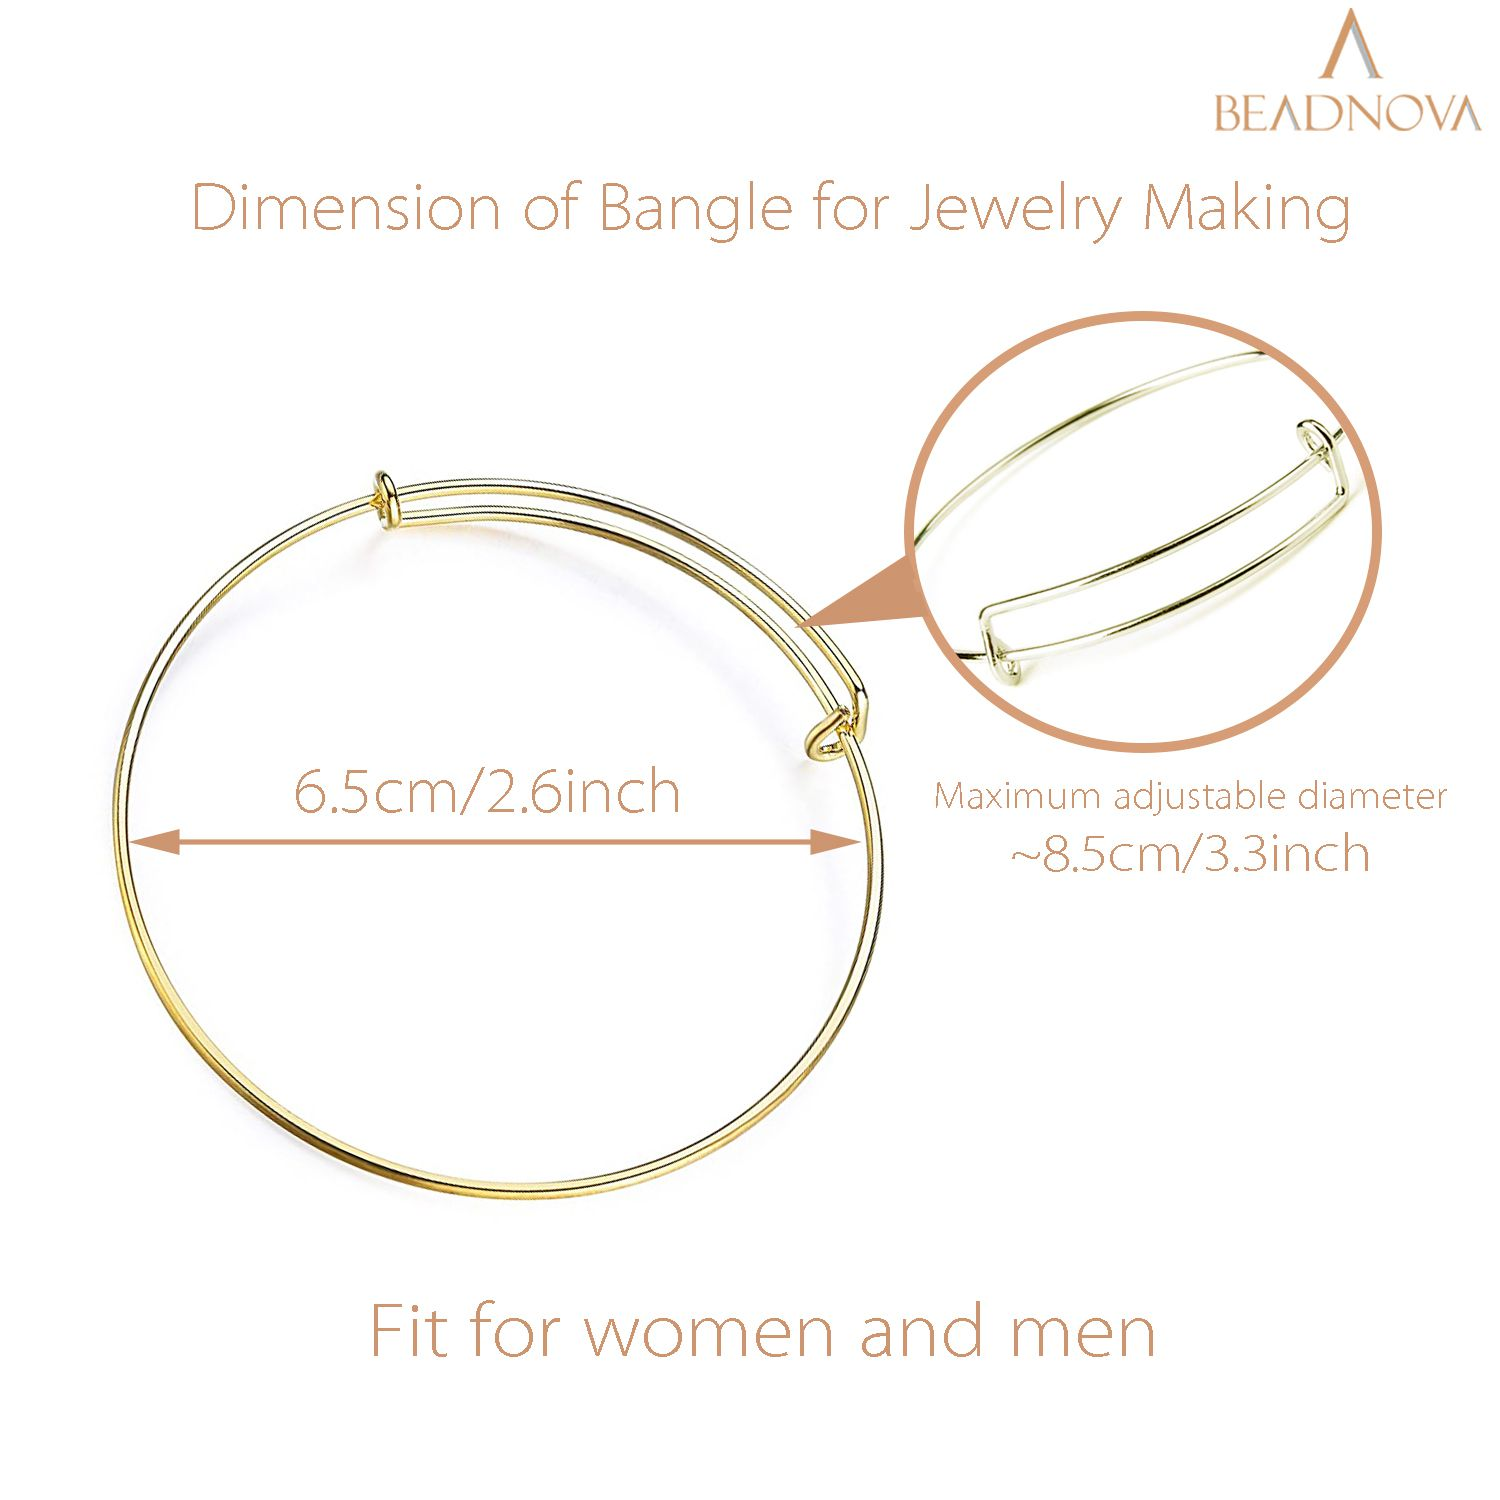 BEADNOVA Bangles for Jewelry Making 40 Pcs Expandable Bangle Bracelet Charm Bracelets for Jewelry Making DIY Bracelet (Gold and Silver, 40pcs)